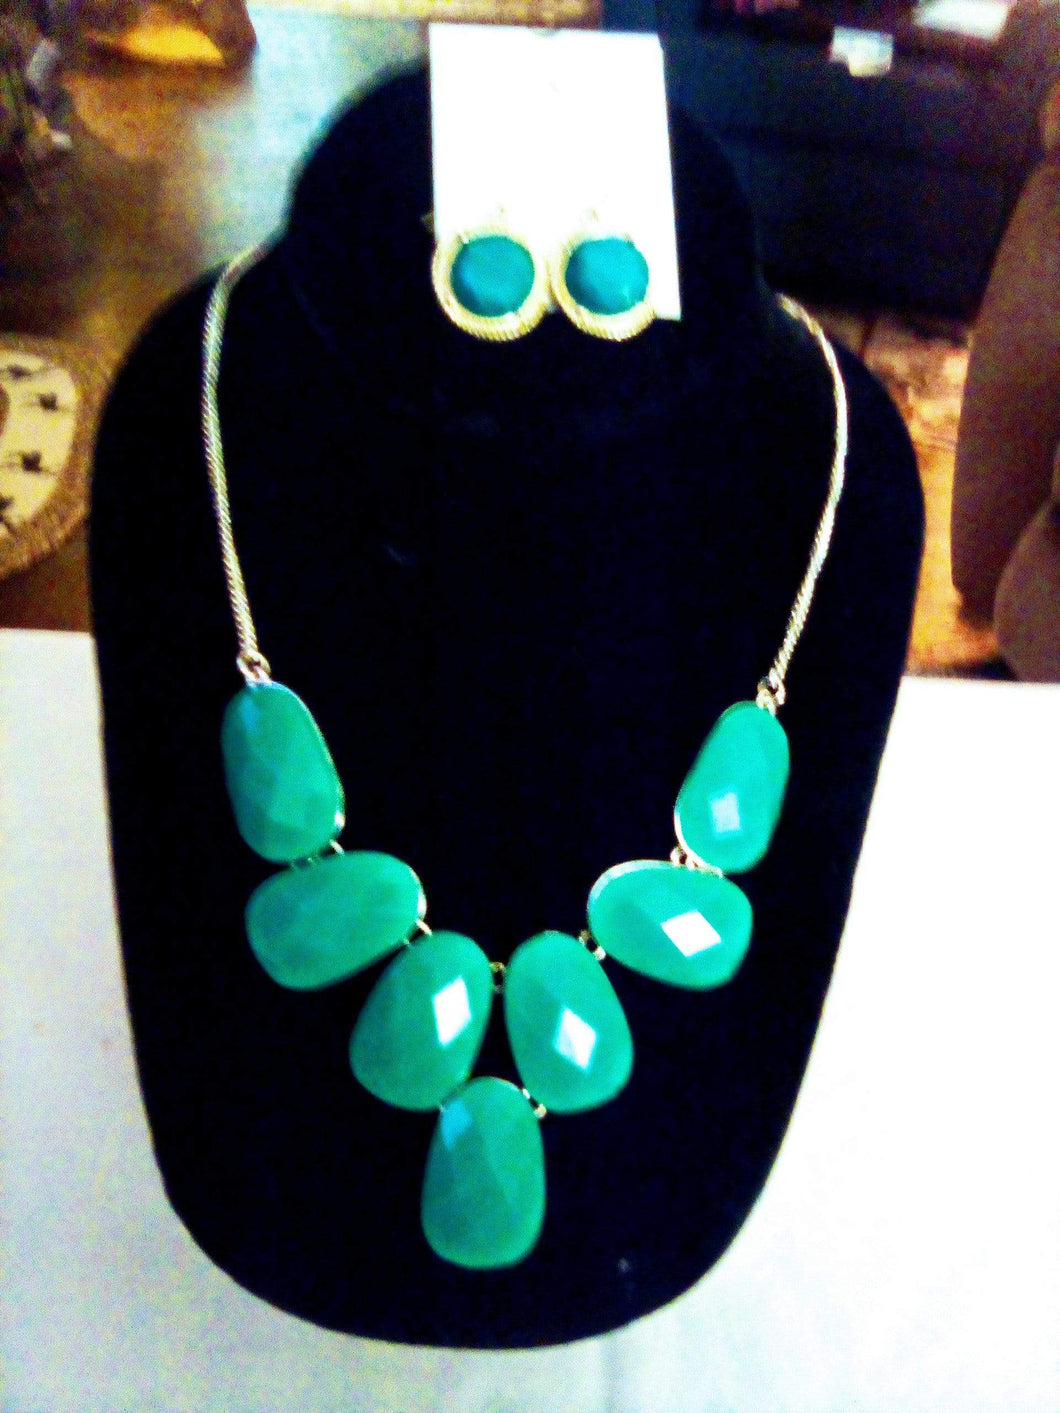 A turquoise colored necklace and earrings - B&P'sringsnthings